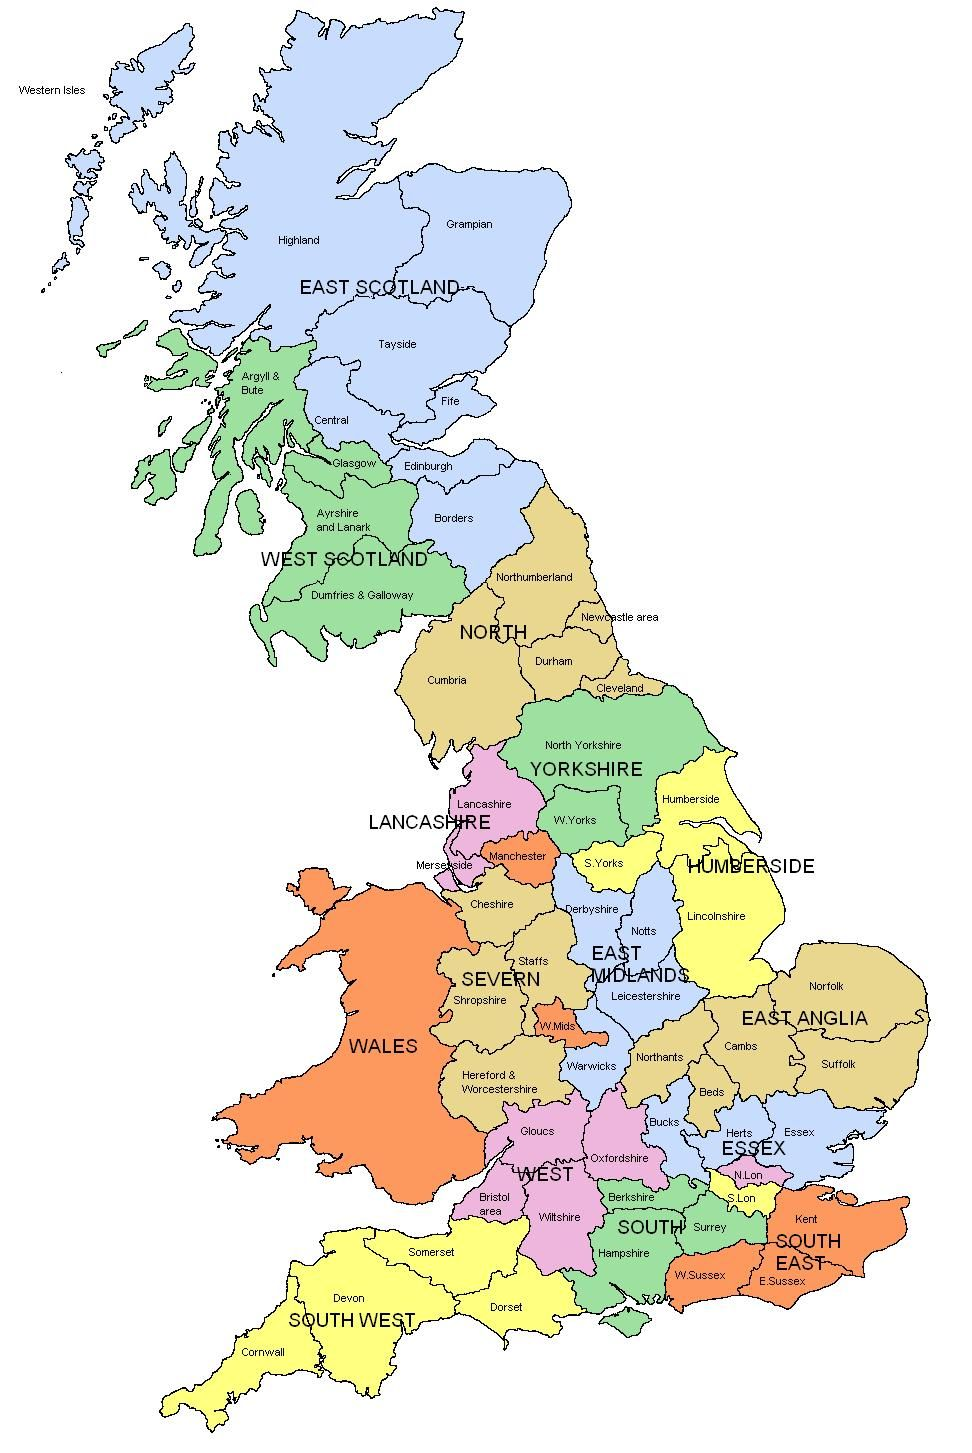 an overview of the great britain and the island of england countries geography England: england, predominant constituent unit of the united kingdom, occupying more than half of the island of great britain.